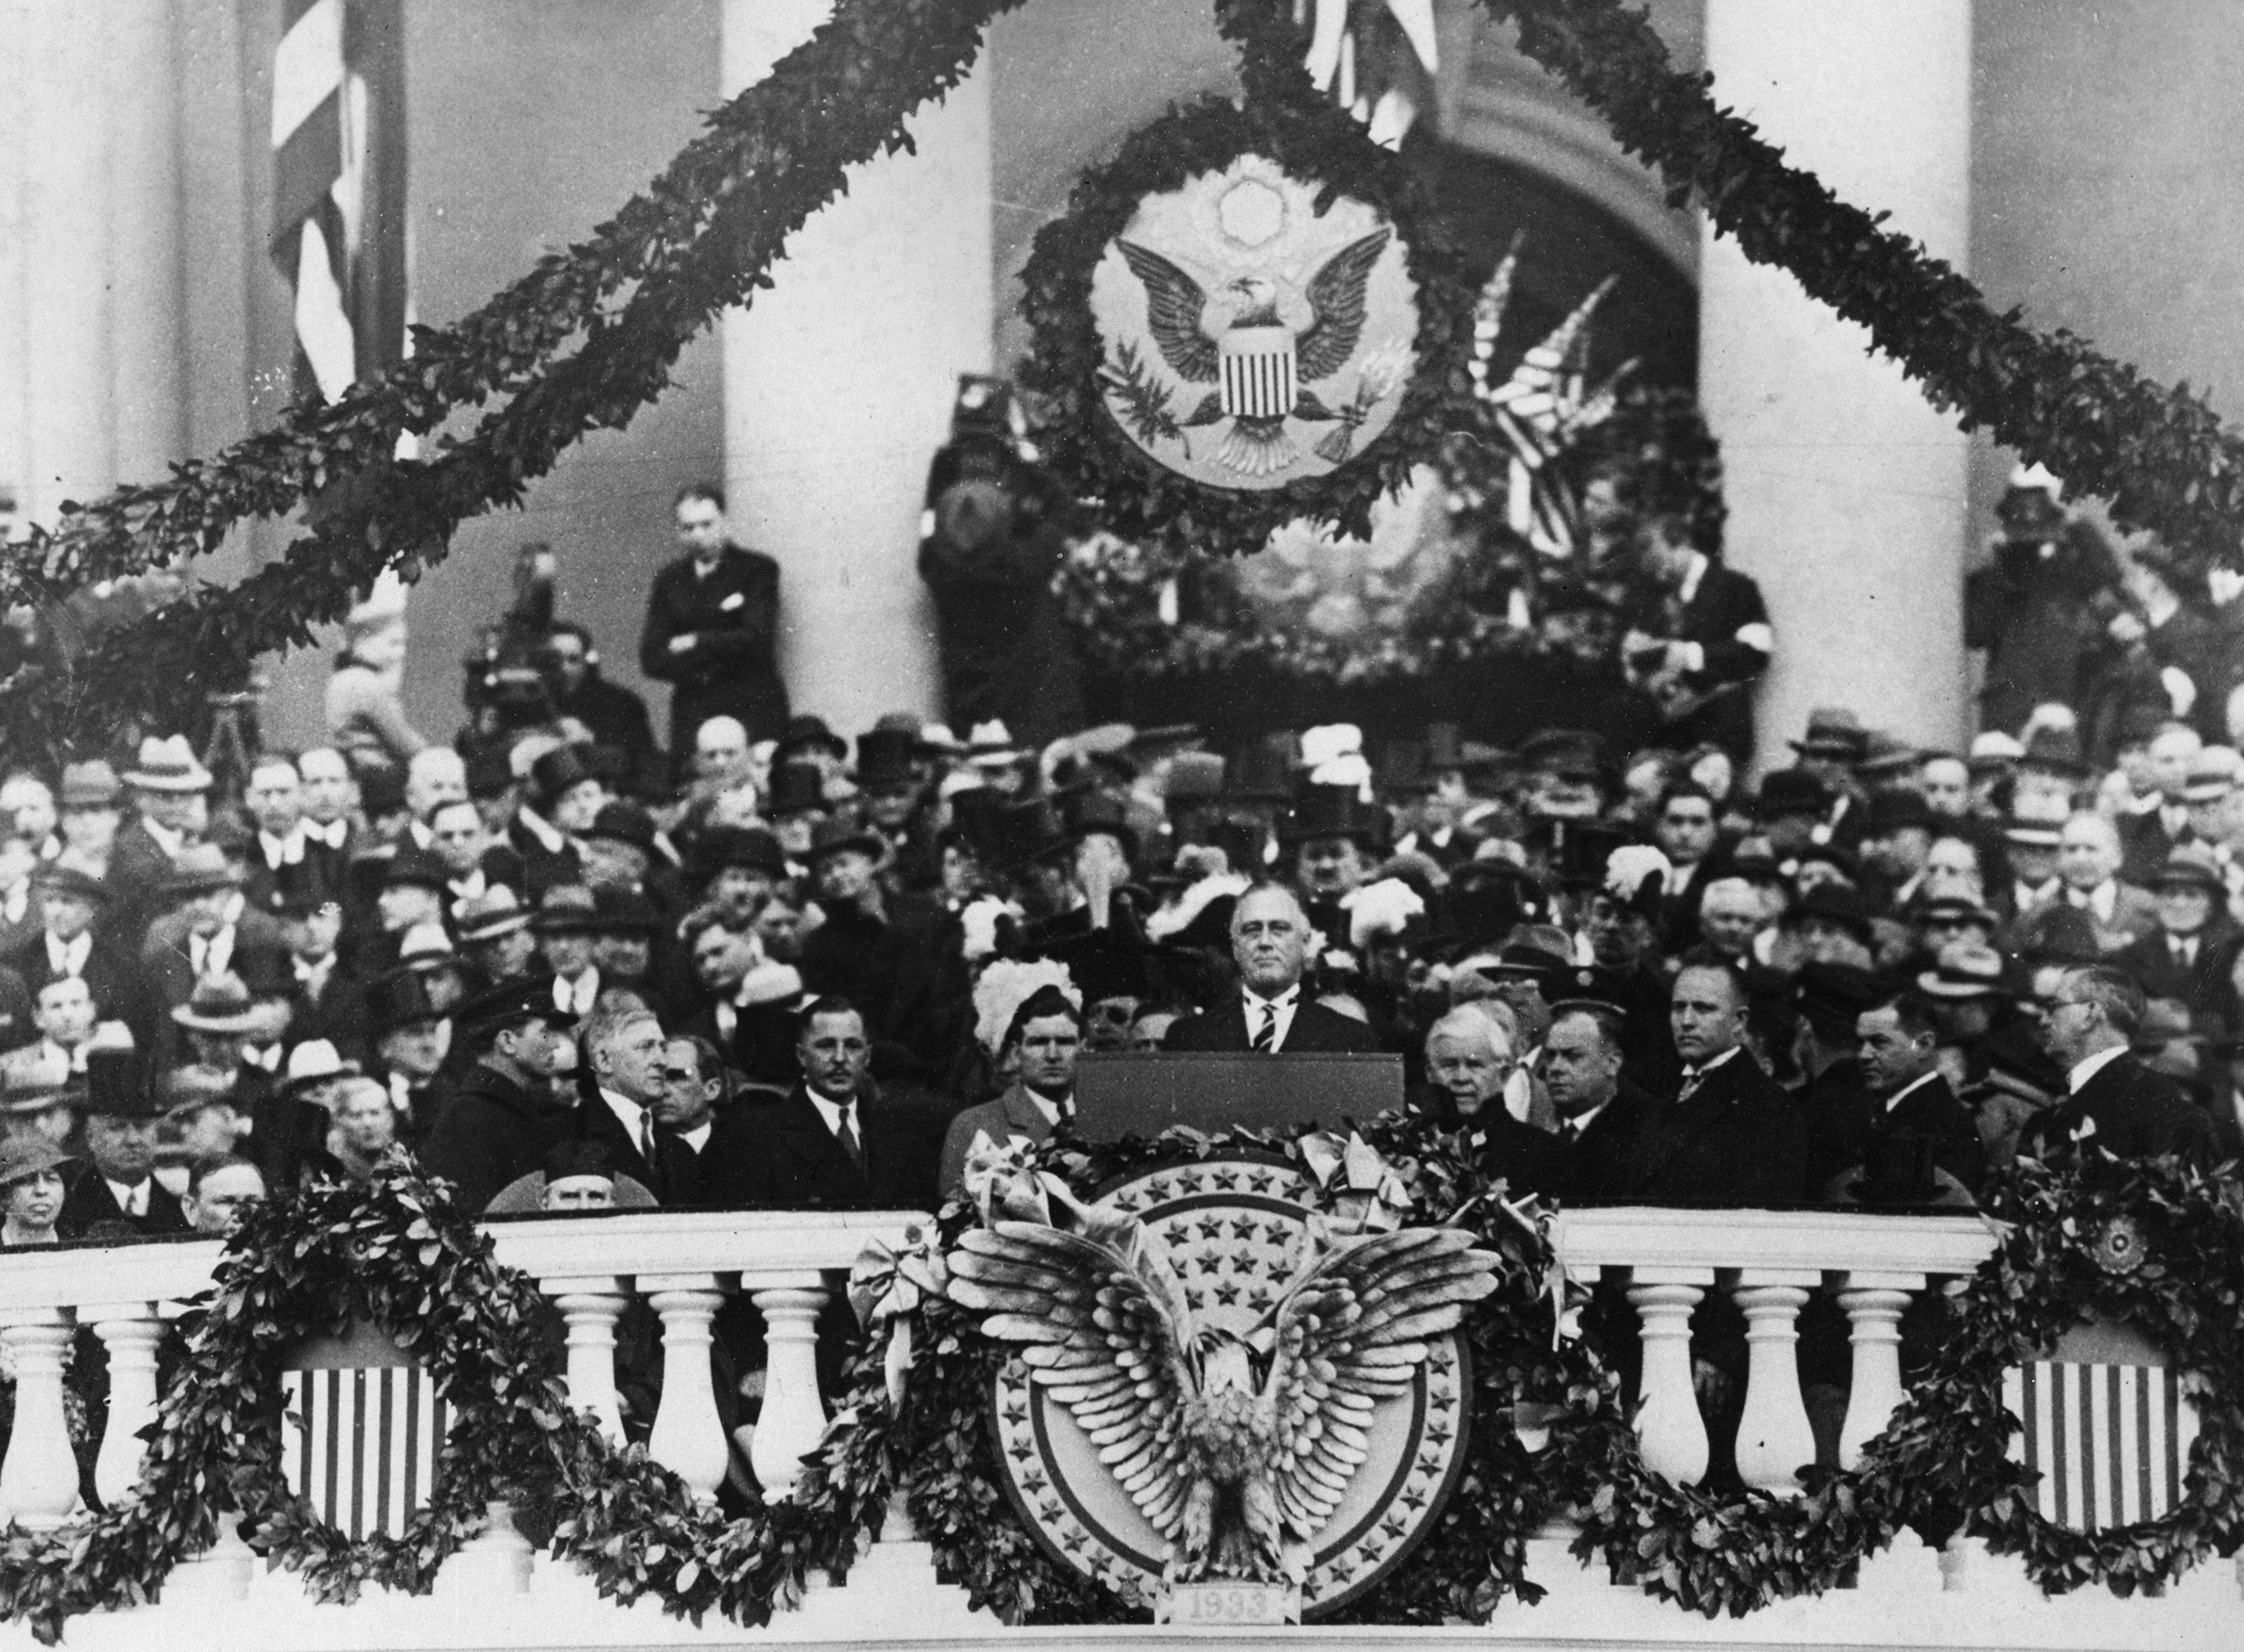 Franklin Delano Roosevelt giving his first inaugural address as 32nd President, 1933.